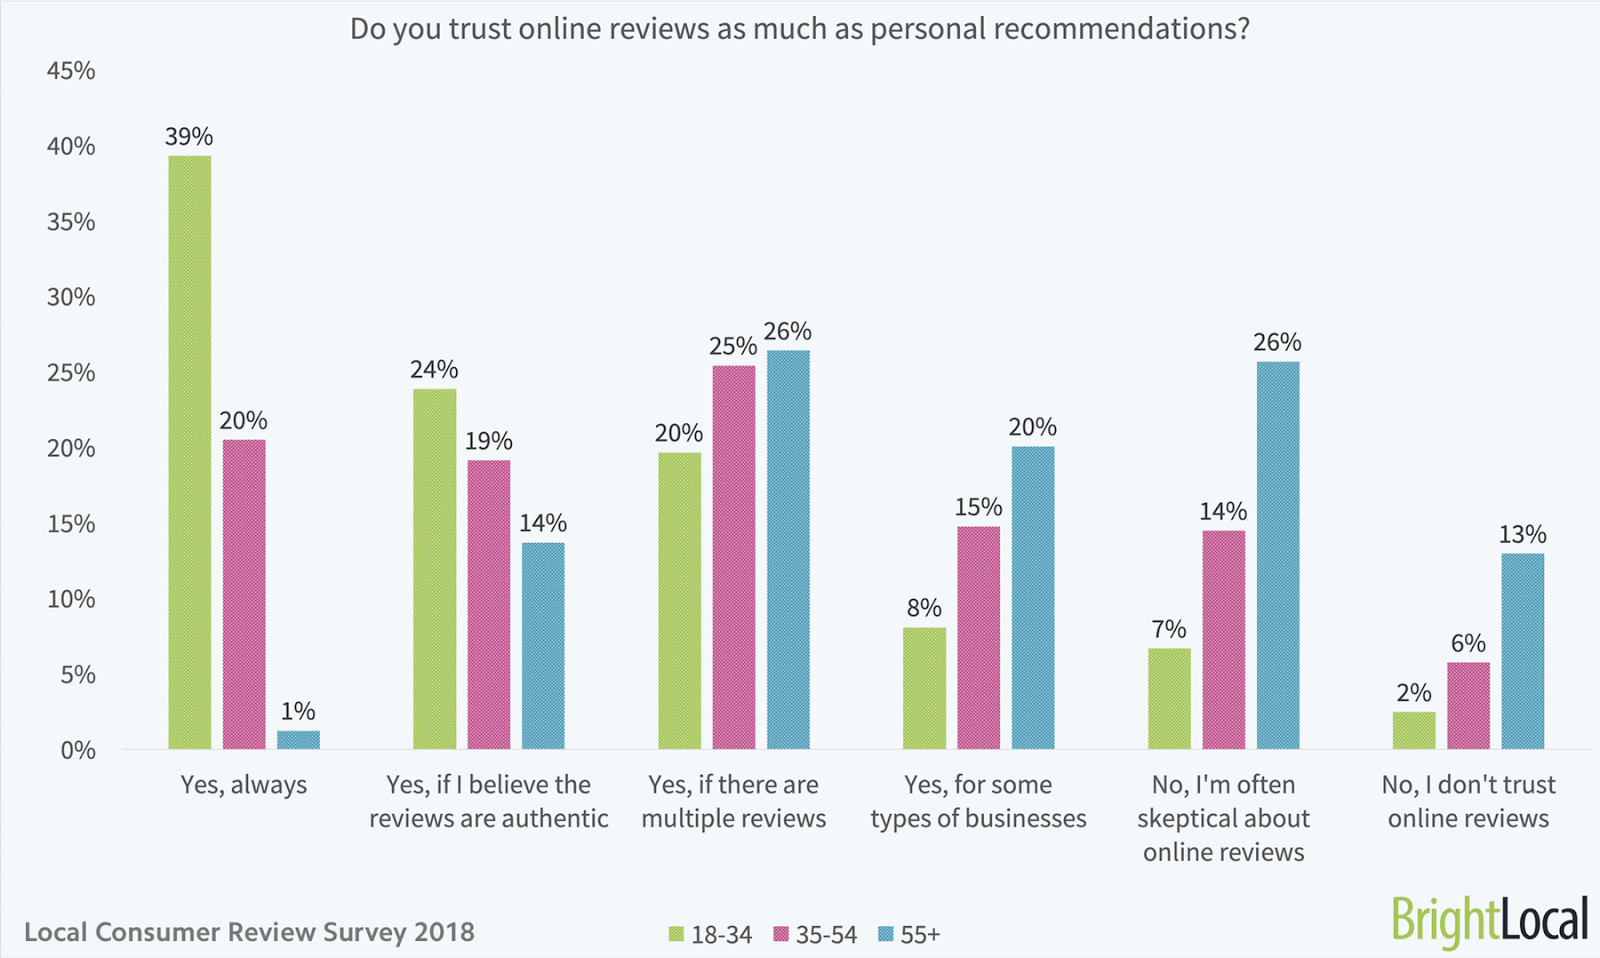 Local Consumer Review 2018 Survey Results by BrightLocal.